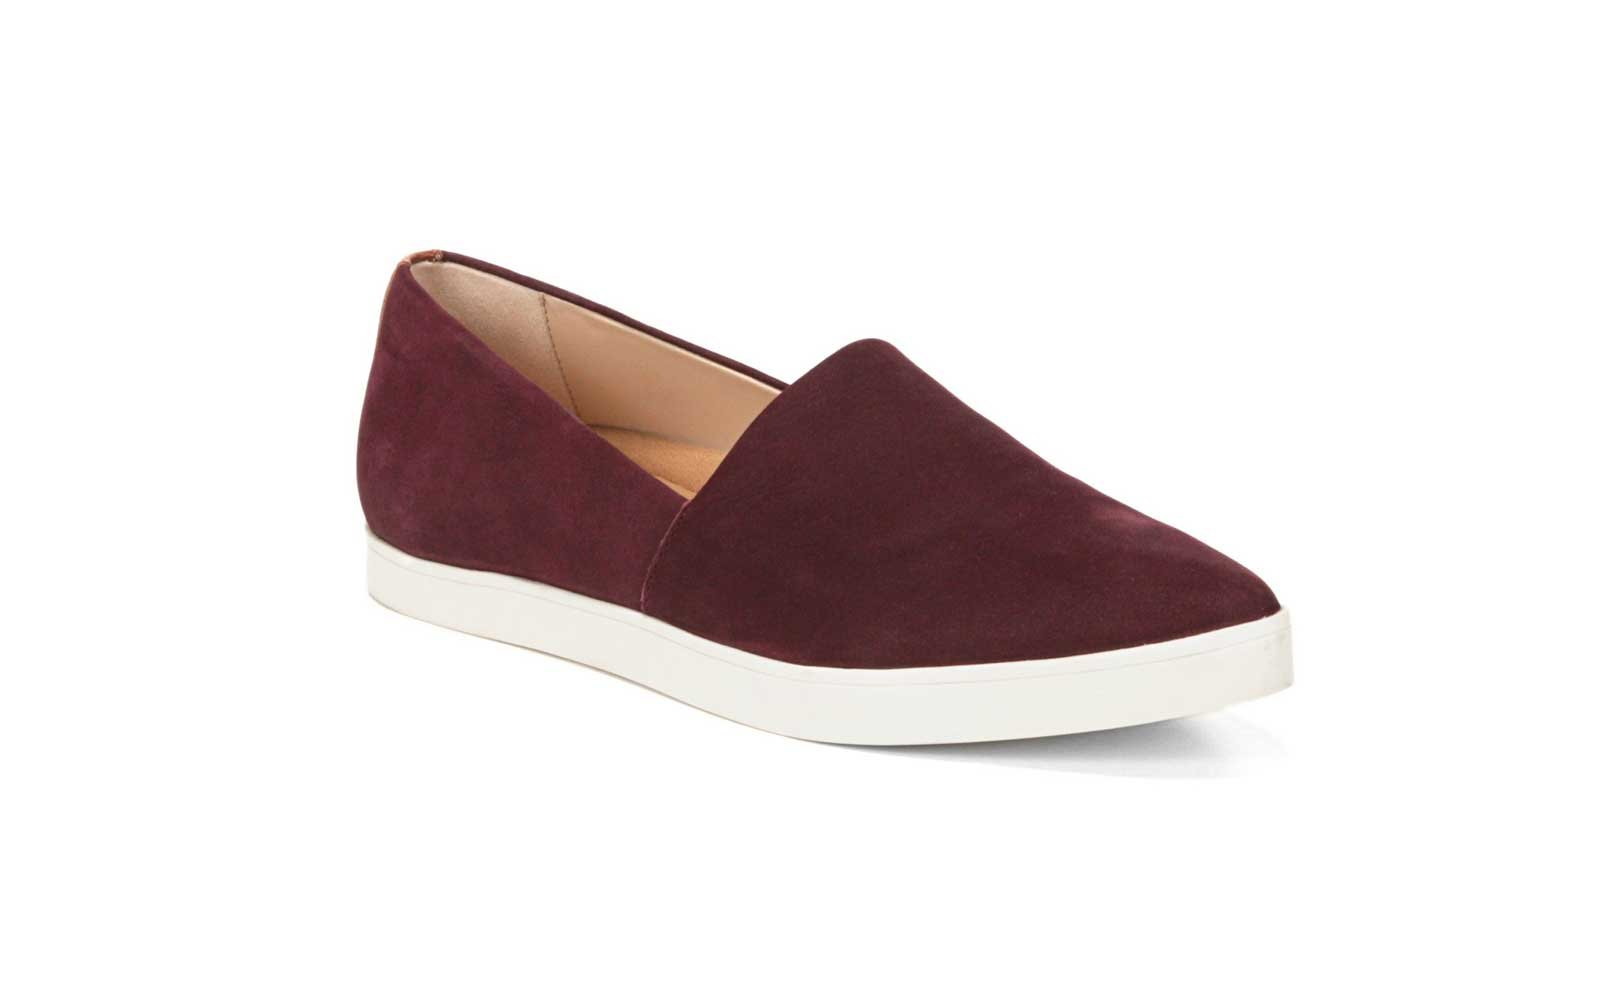 d7240c96a442 Dr. Scholl s  Vienna  Slip-on Sneaker. One of the most comfortable walking  shoes ...